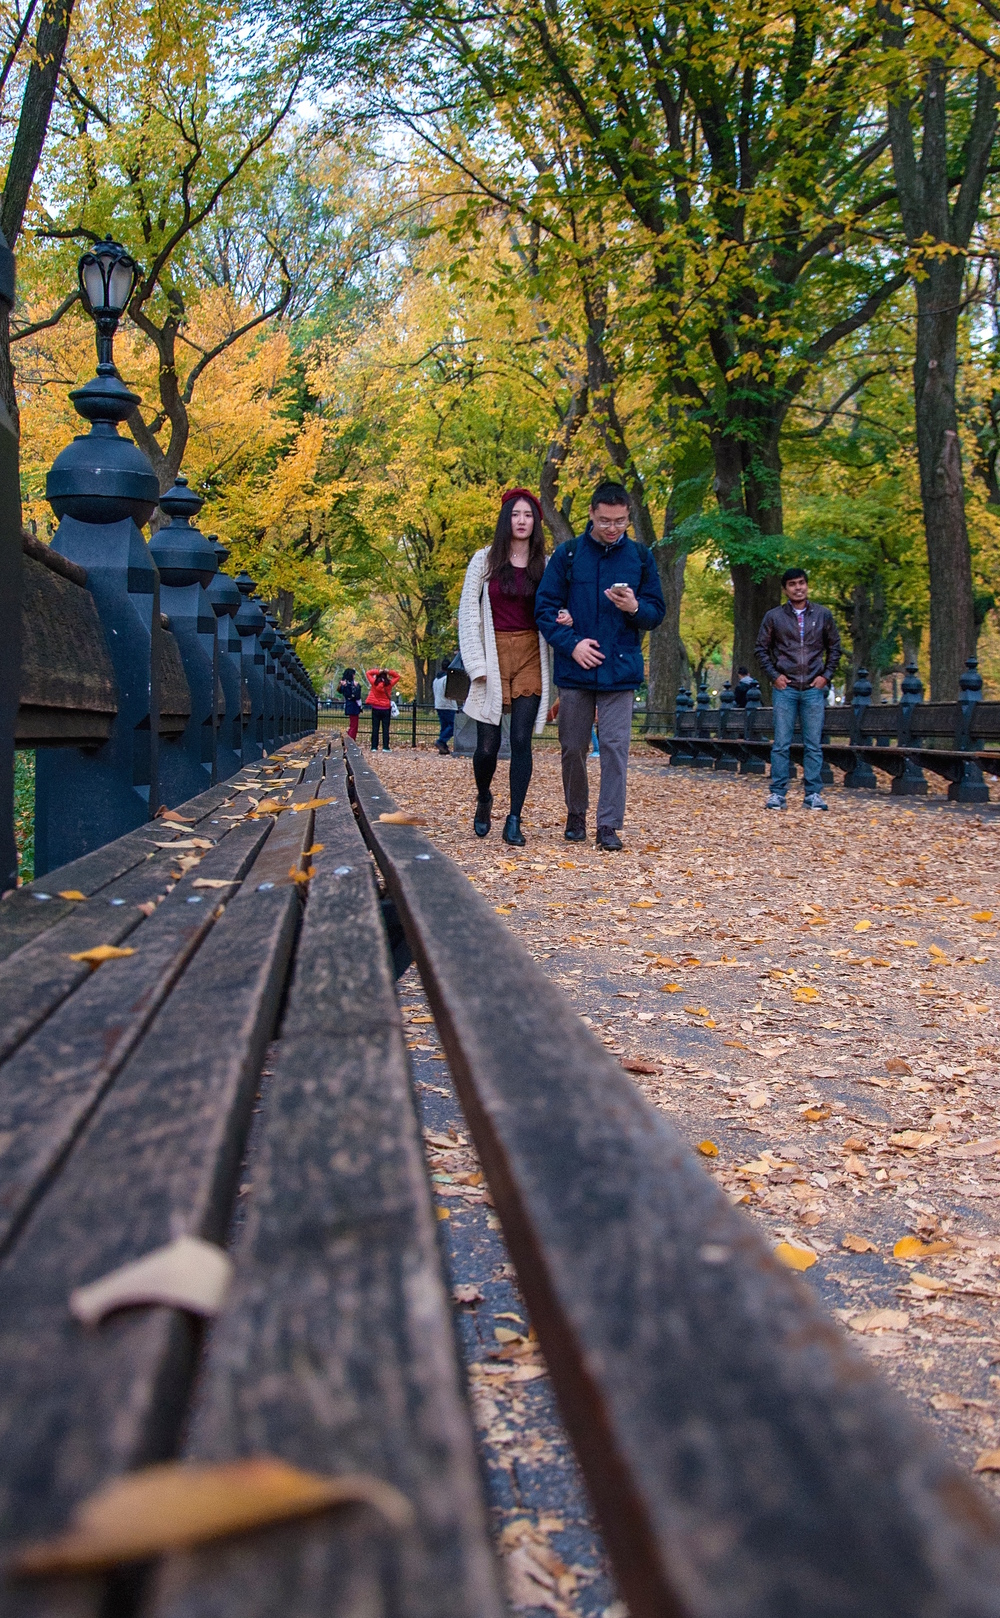 @ @ Central Park_Autumn leaves_benches_couple copy 2.jpg